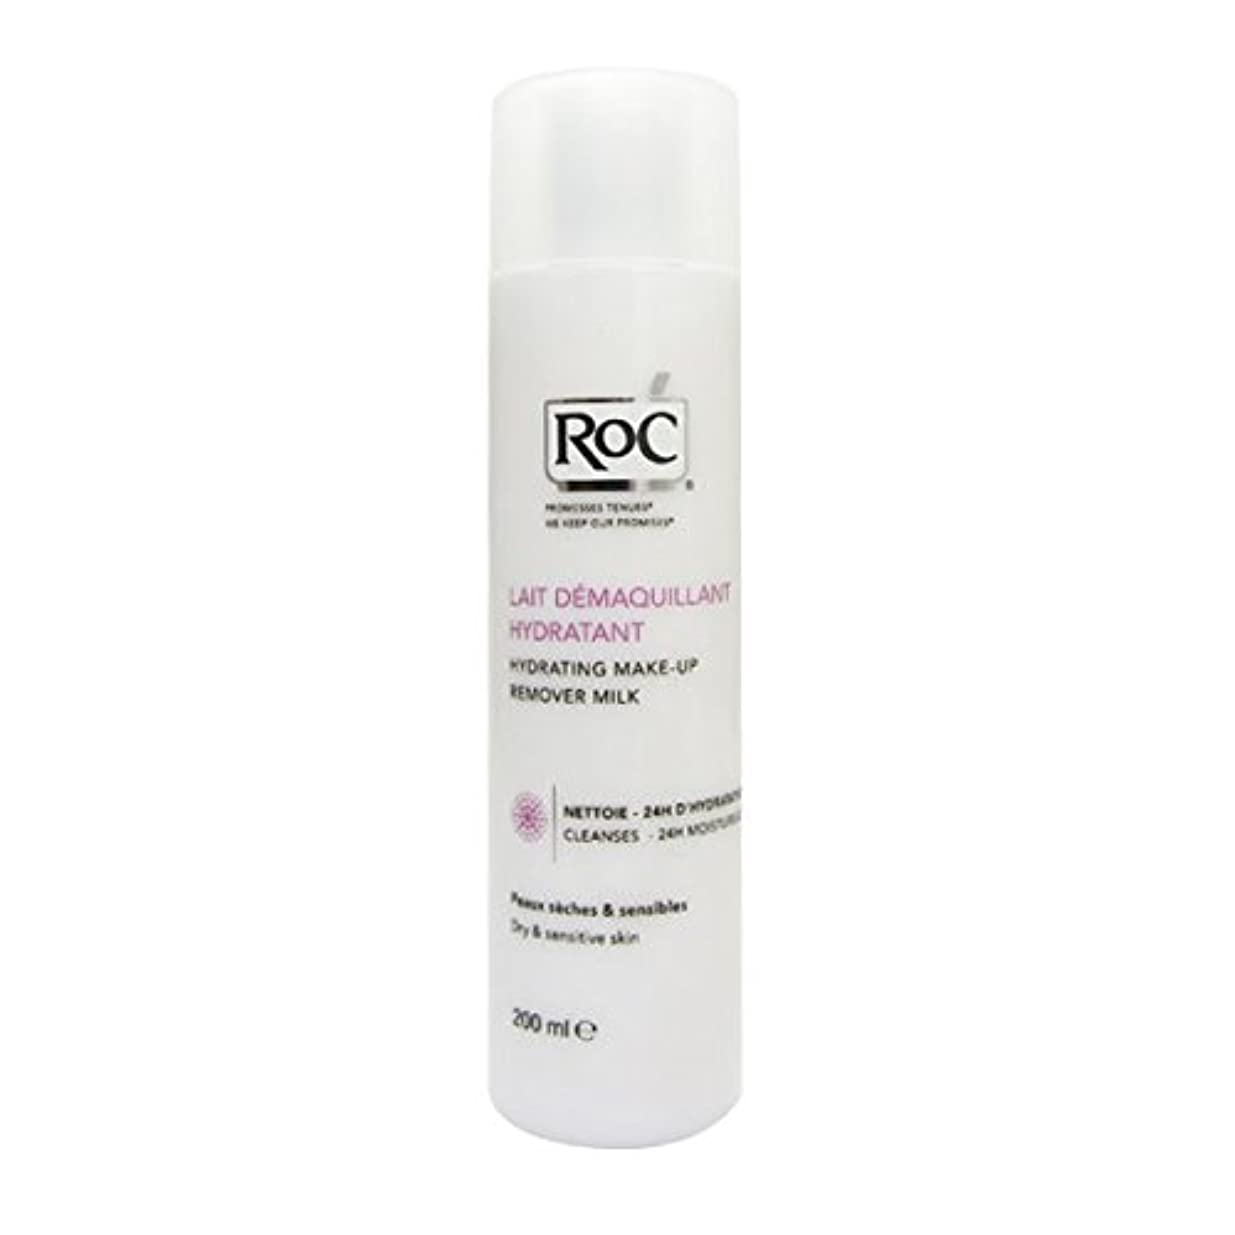 Roc Moisturizing Cleansing Milk 200ml [並行輸入品]